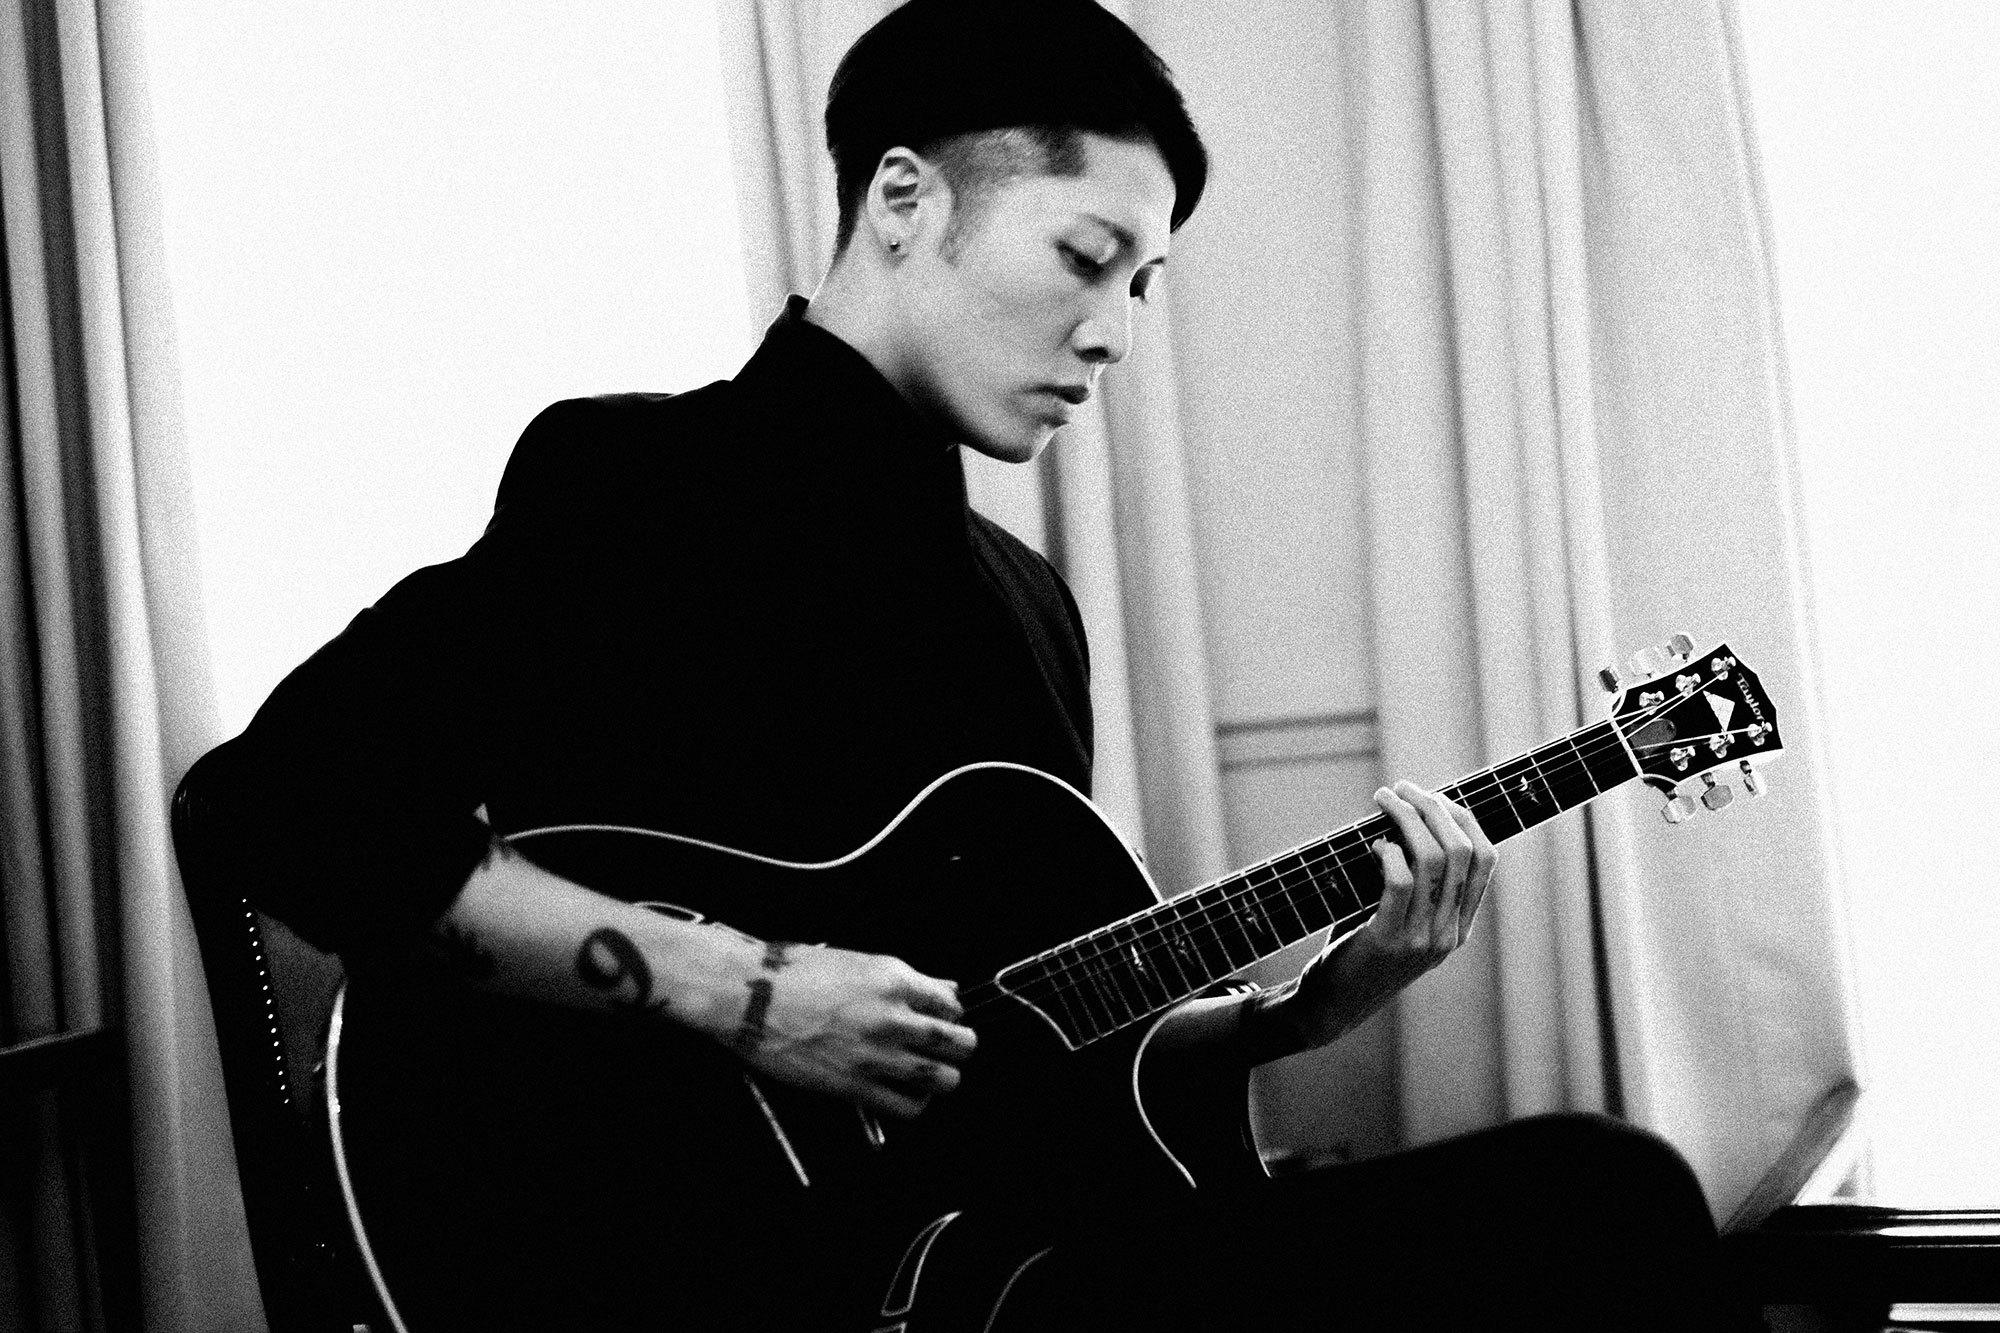 meet-miyavi-the-japanese-pop-star-turned-world-war-two-villain-in-angelina-jolies-unbroken-body-image-1419337767